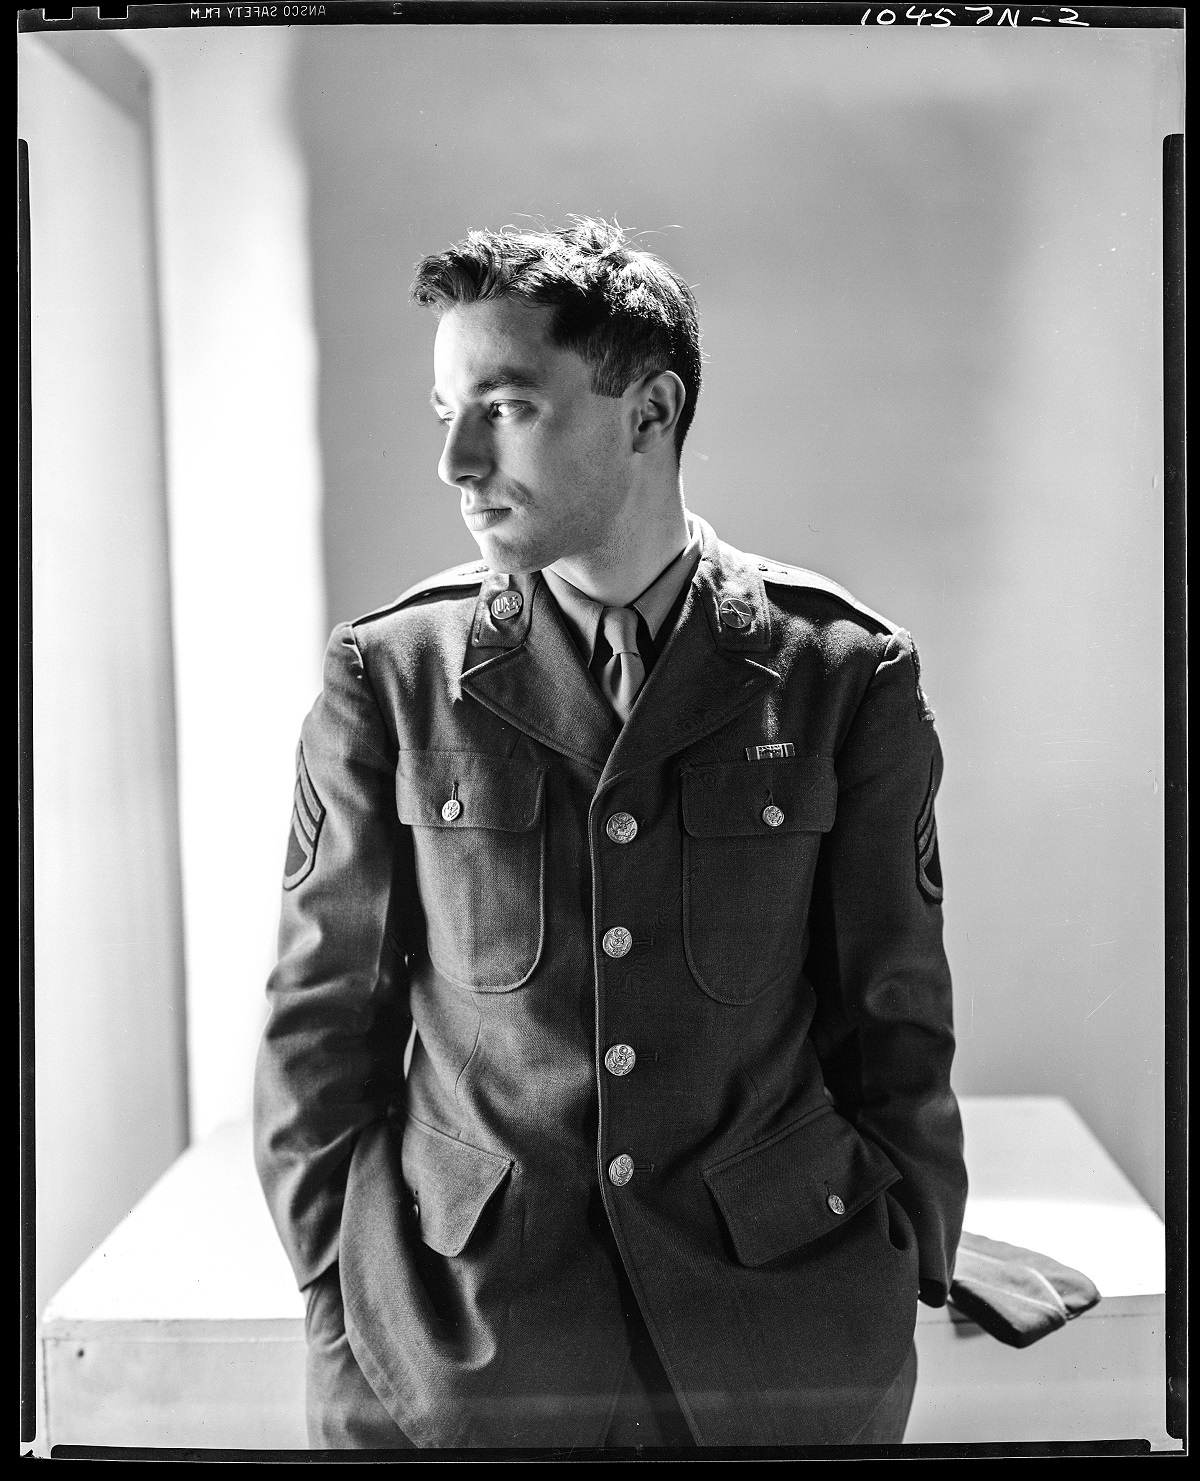 Sergeant Walter Bernstein, writer and film producer, in US Army uniform. (Photo by Clifford Coffin/Conde Nast via Getty Images)